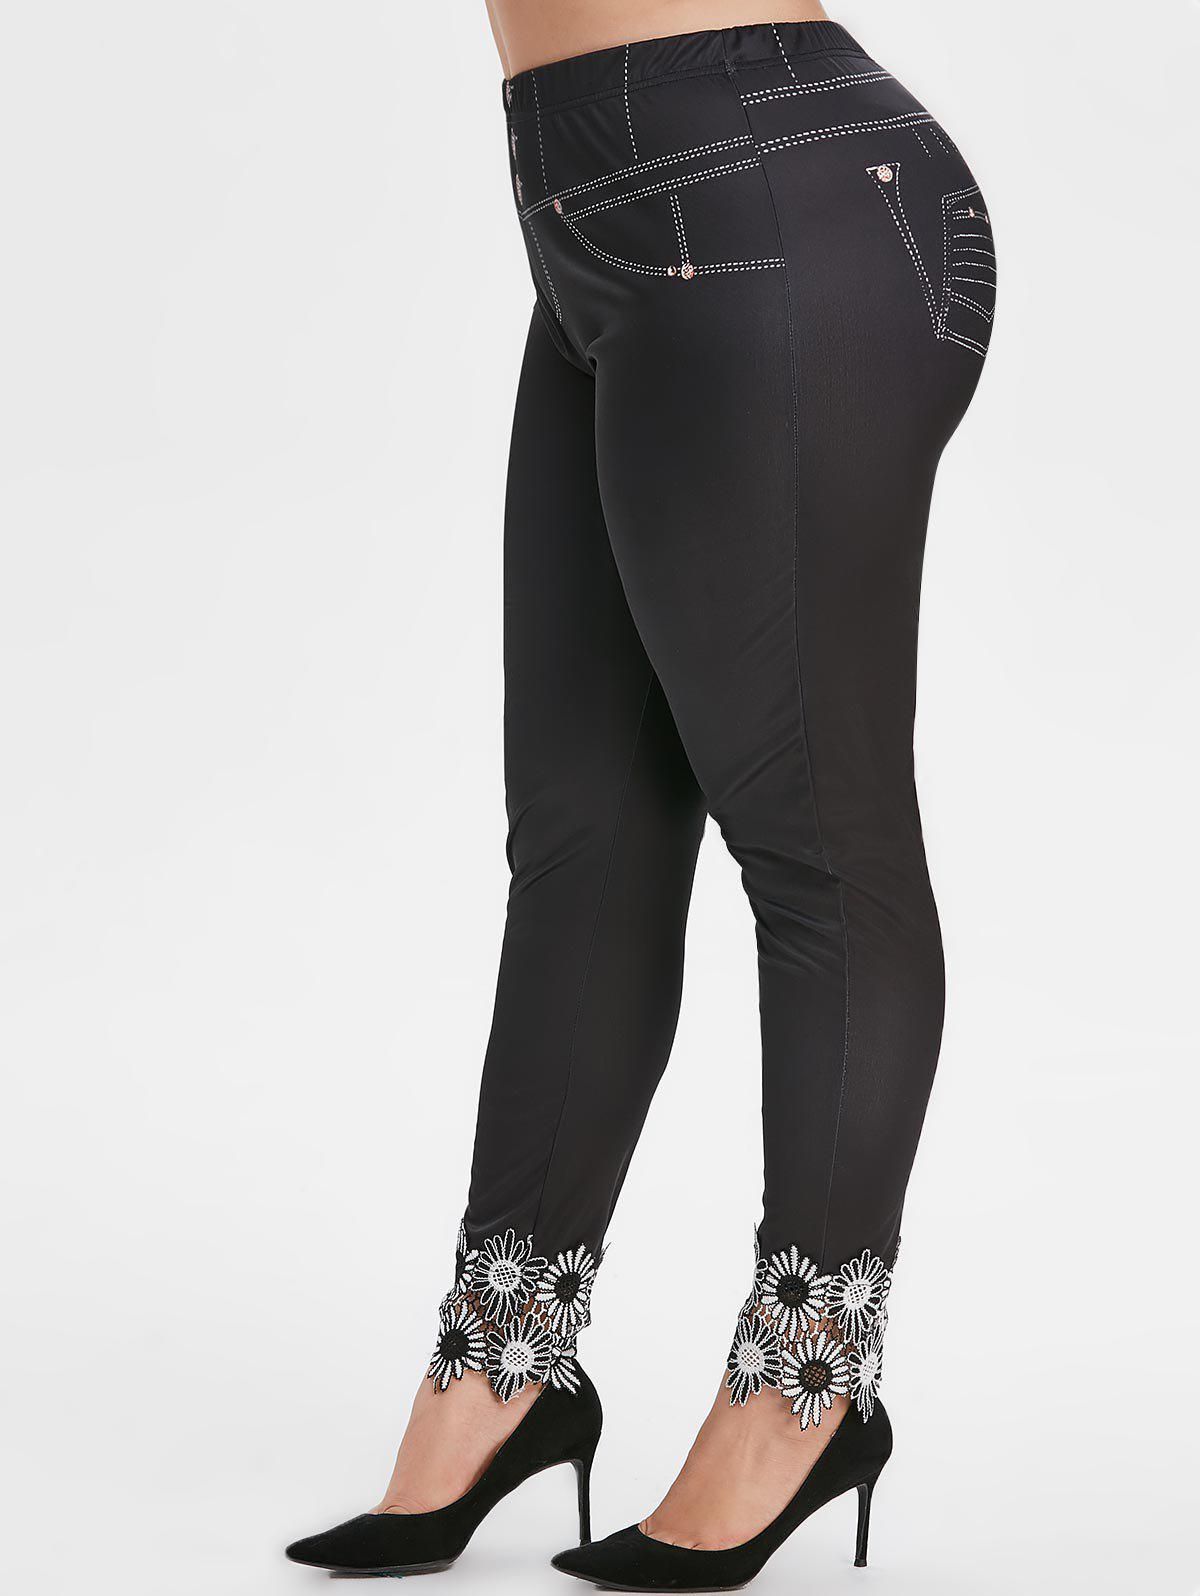 Plus Size High Rise Lace Applique Leggings 3D - Noir 4X